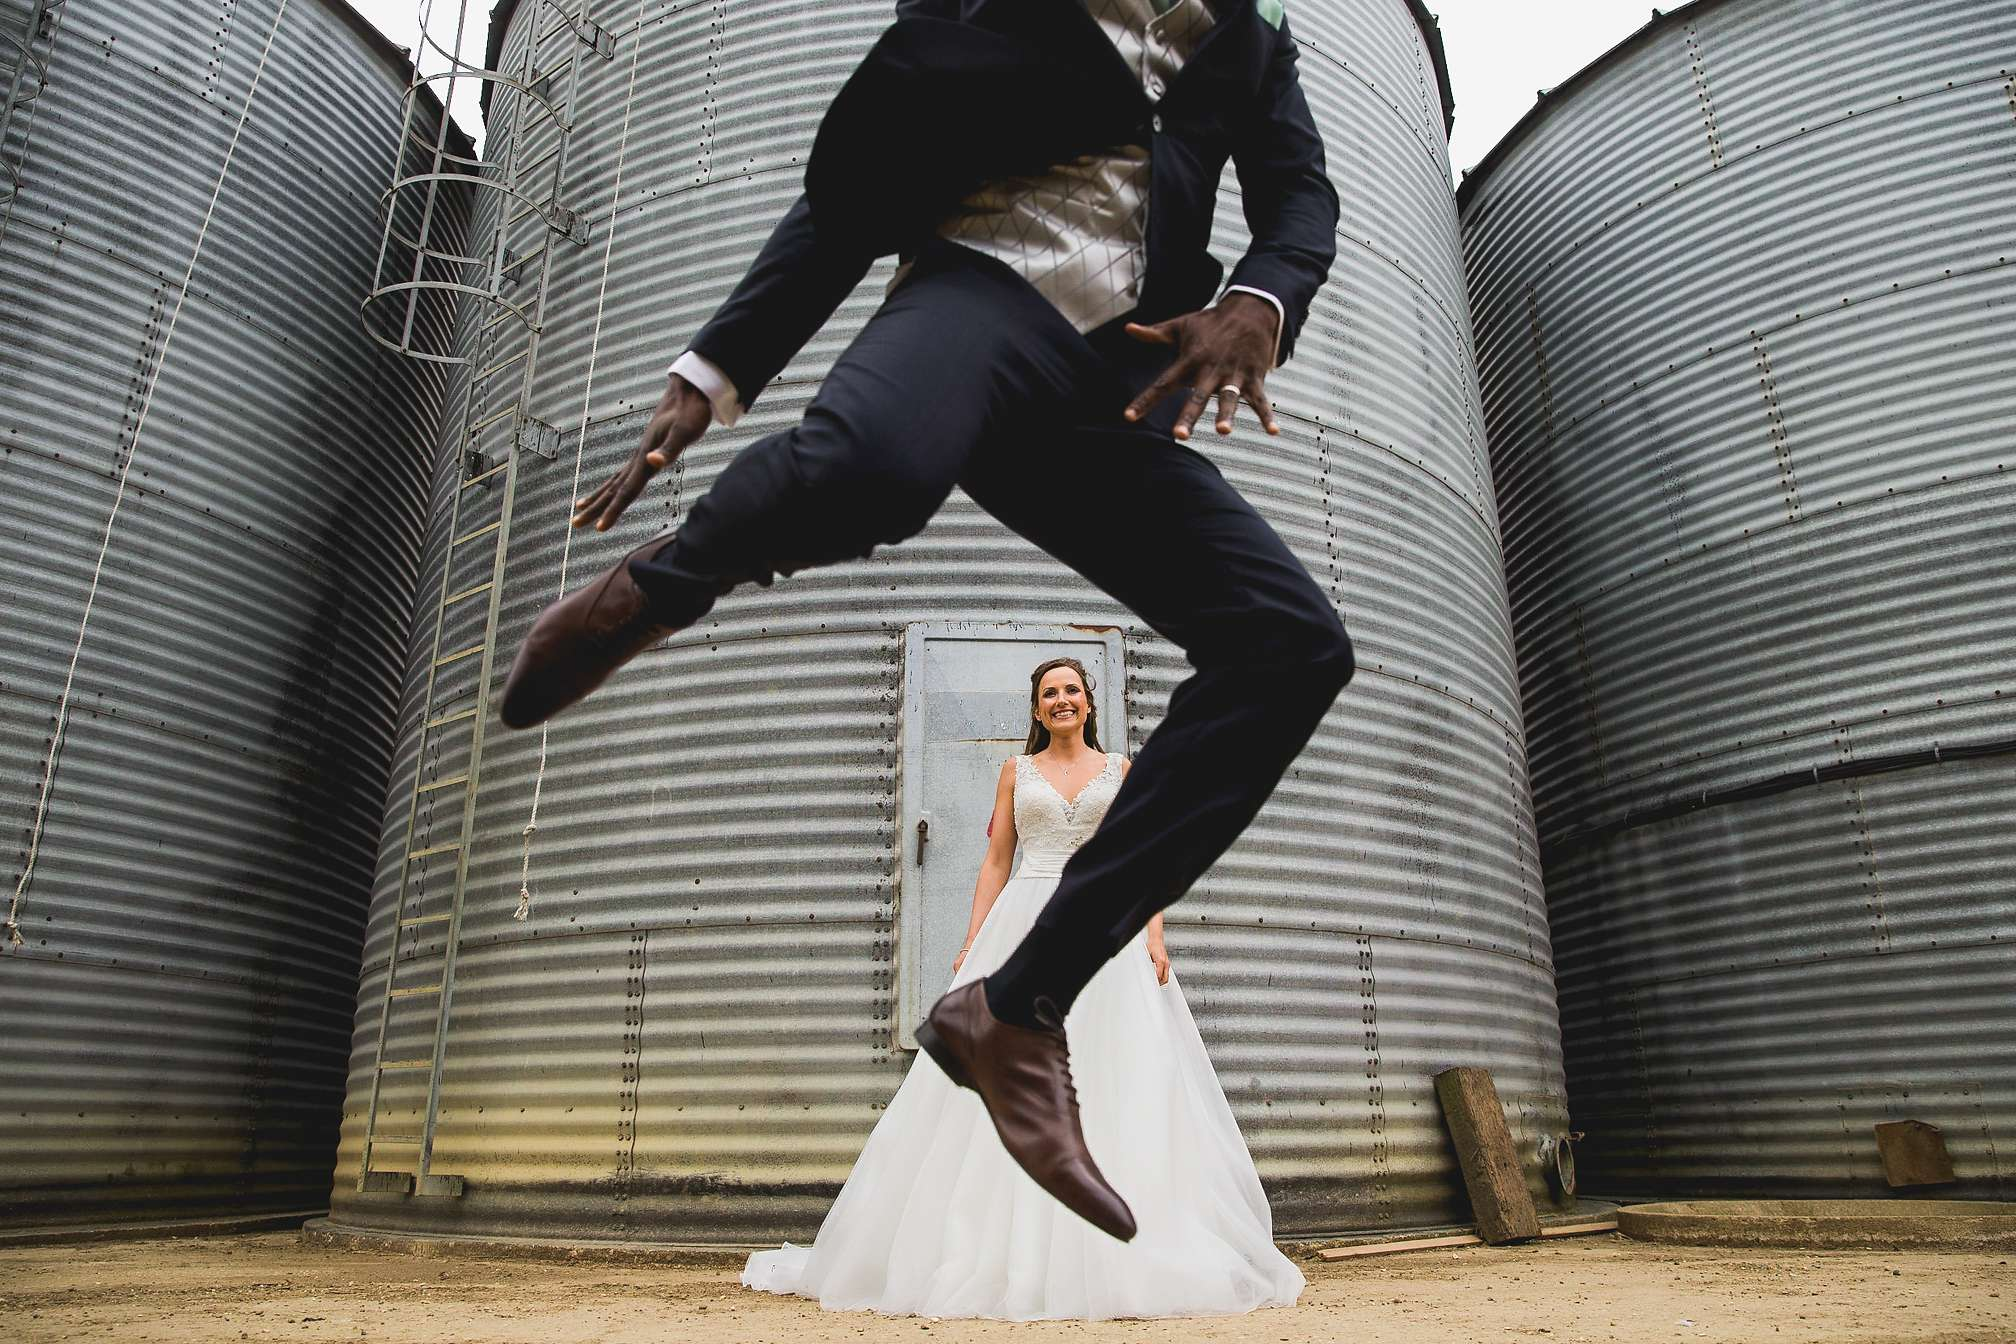 Unusual quirky wedding portrait